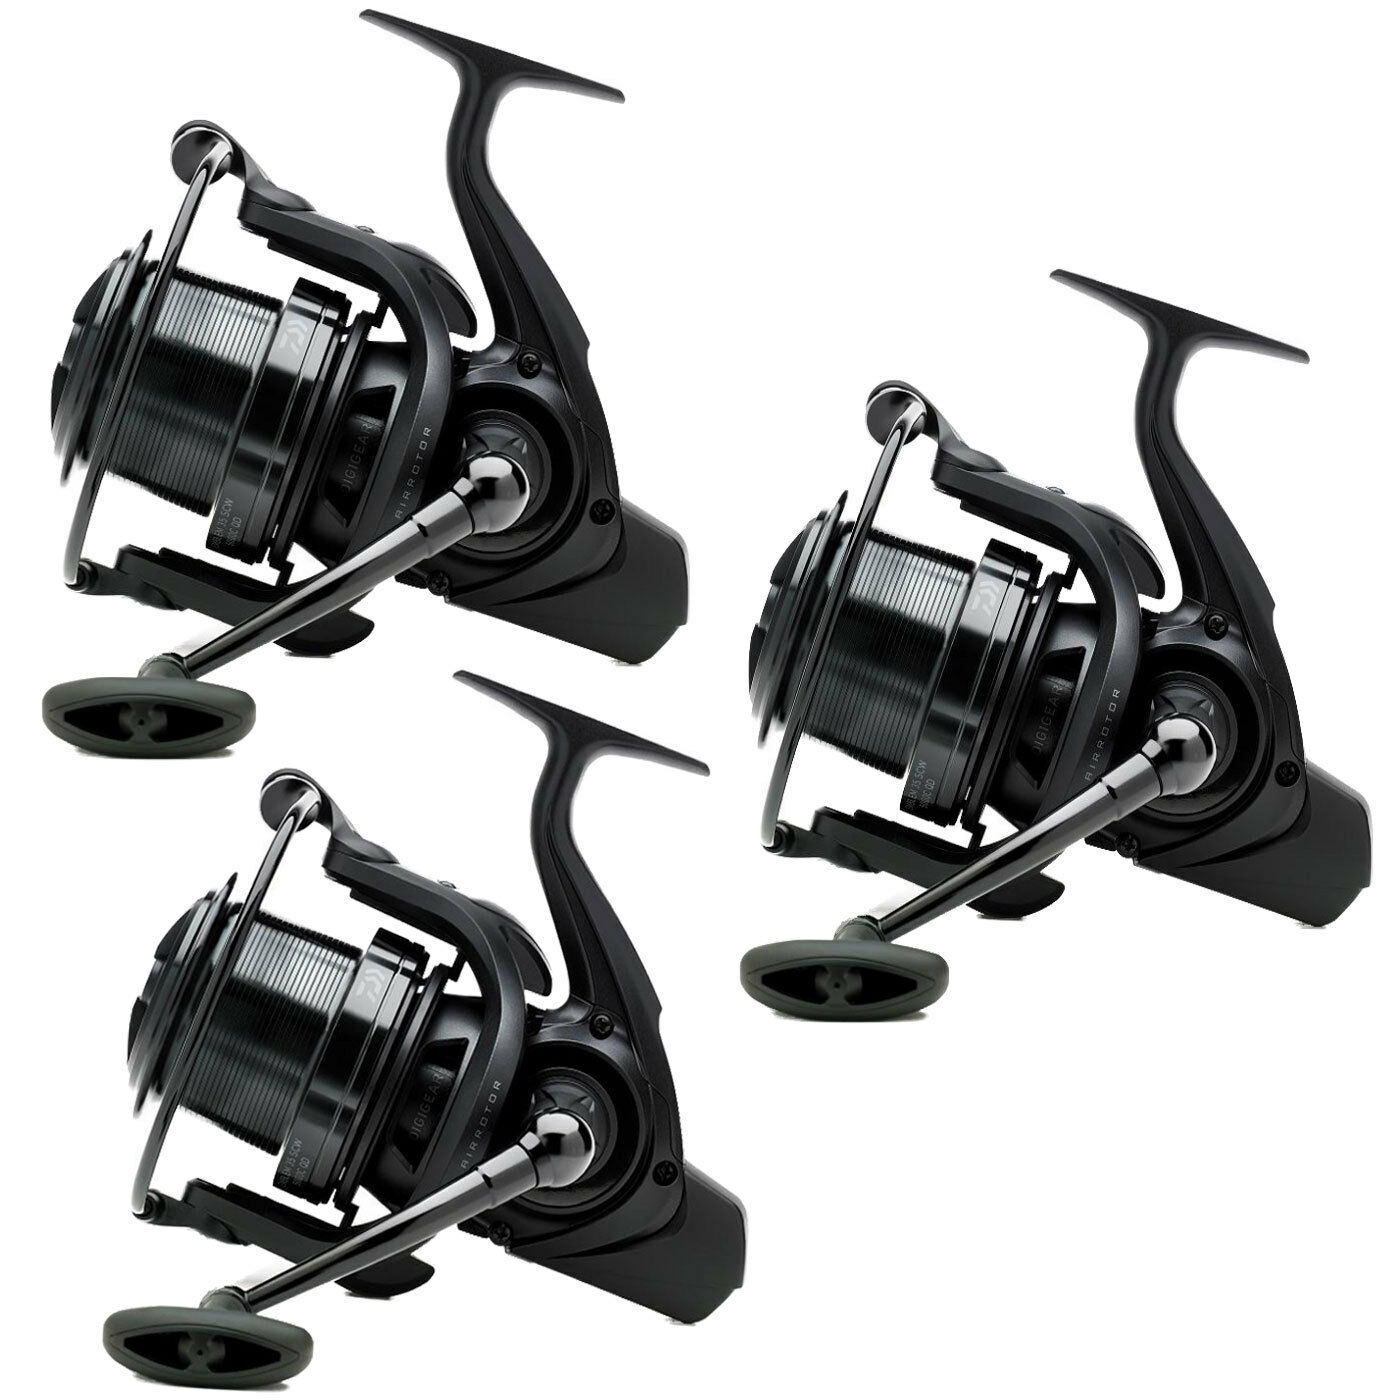 Daiwa 18 Emblem 35 SCW 5000C QD Big Pit Reel -Set of 3- New 2018- Free Delivery